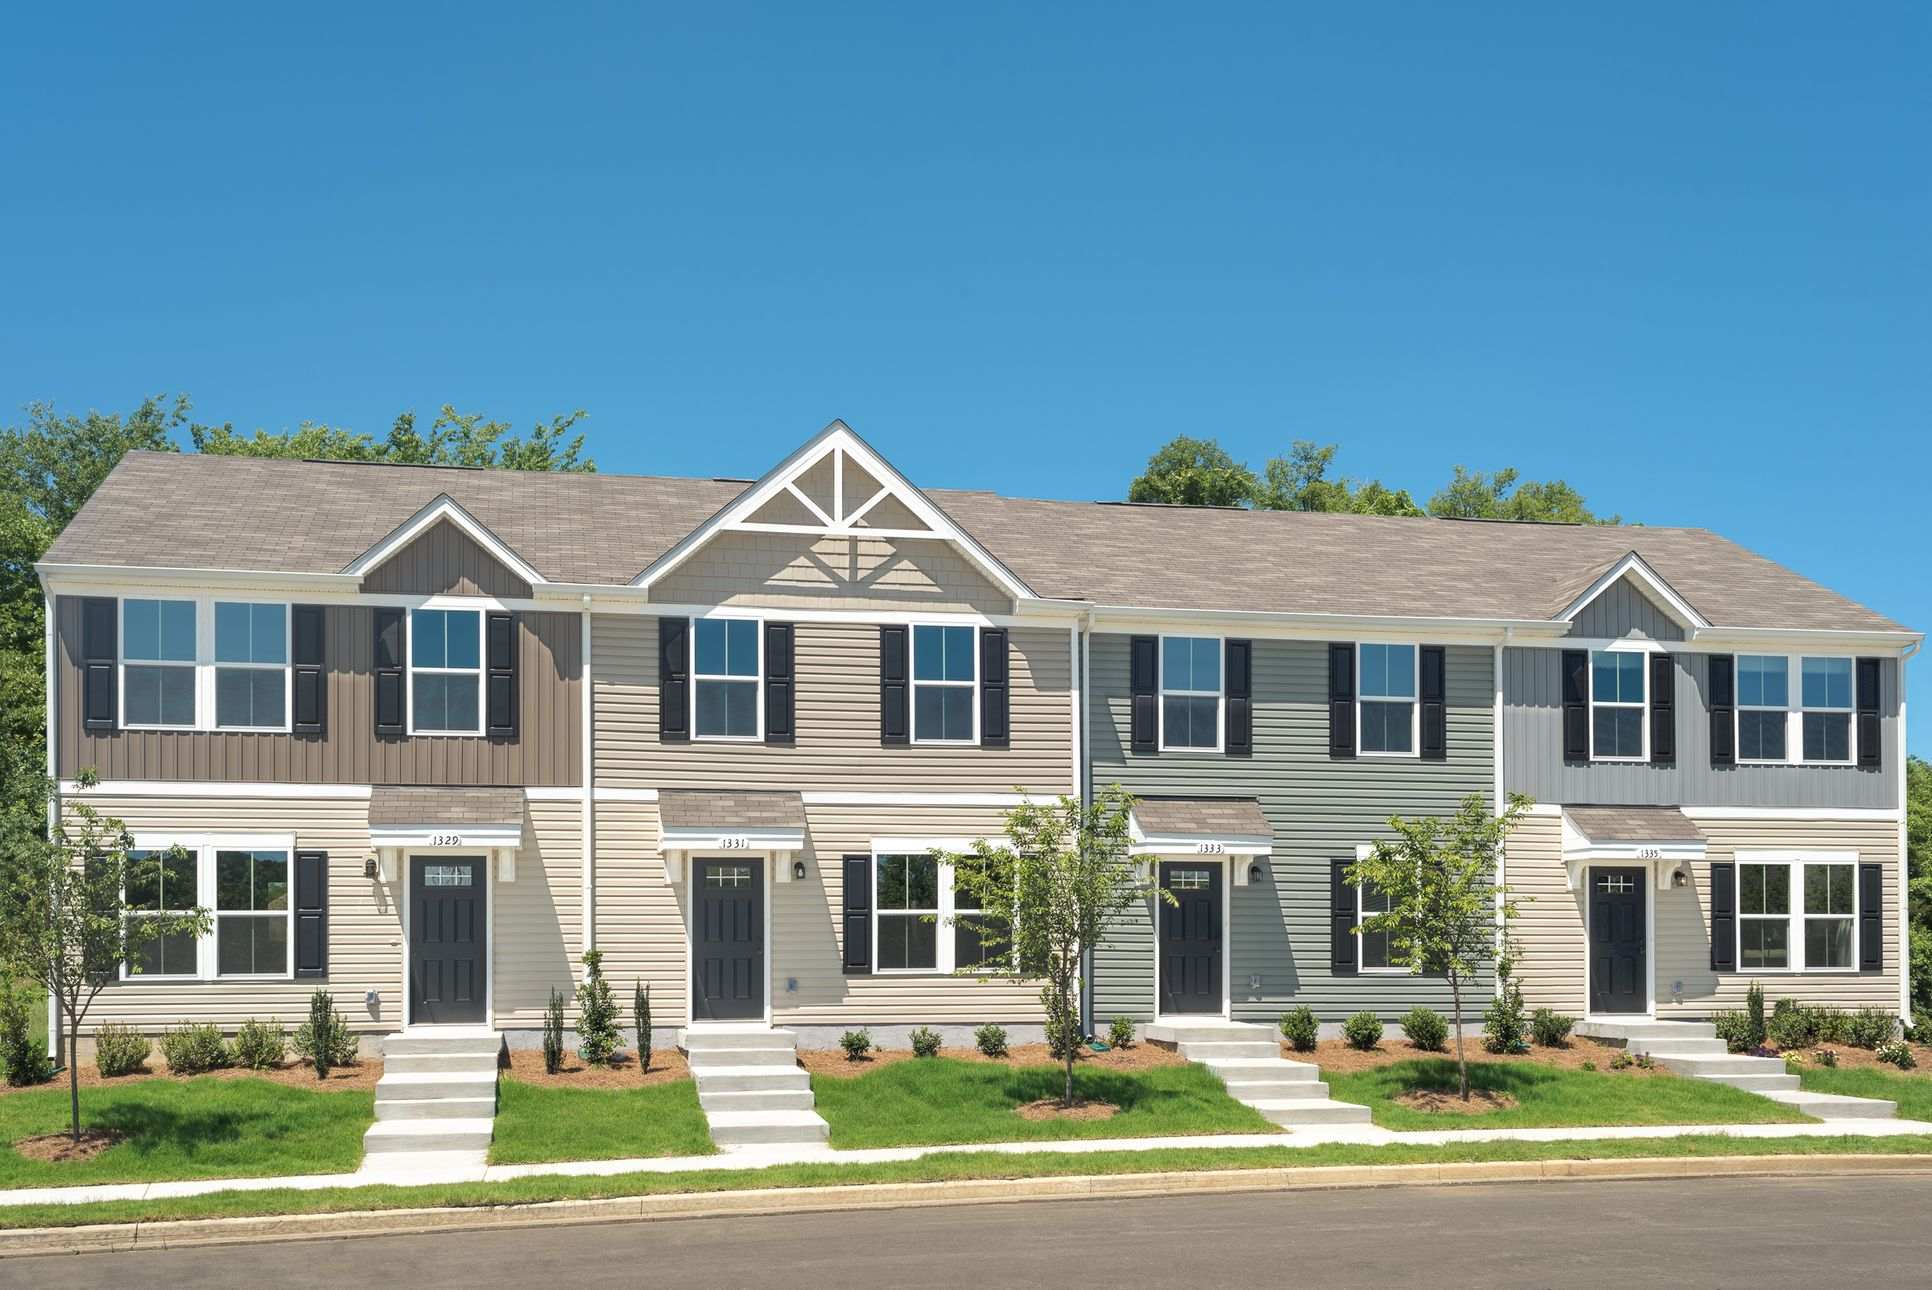 Why rent when you can own for the same or less than rent?:Get the lowest-priced new homes less than3 miles to Downtown Greenville with included lawn maintenance.Schedule a visittoday!